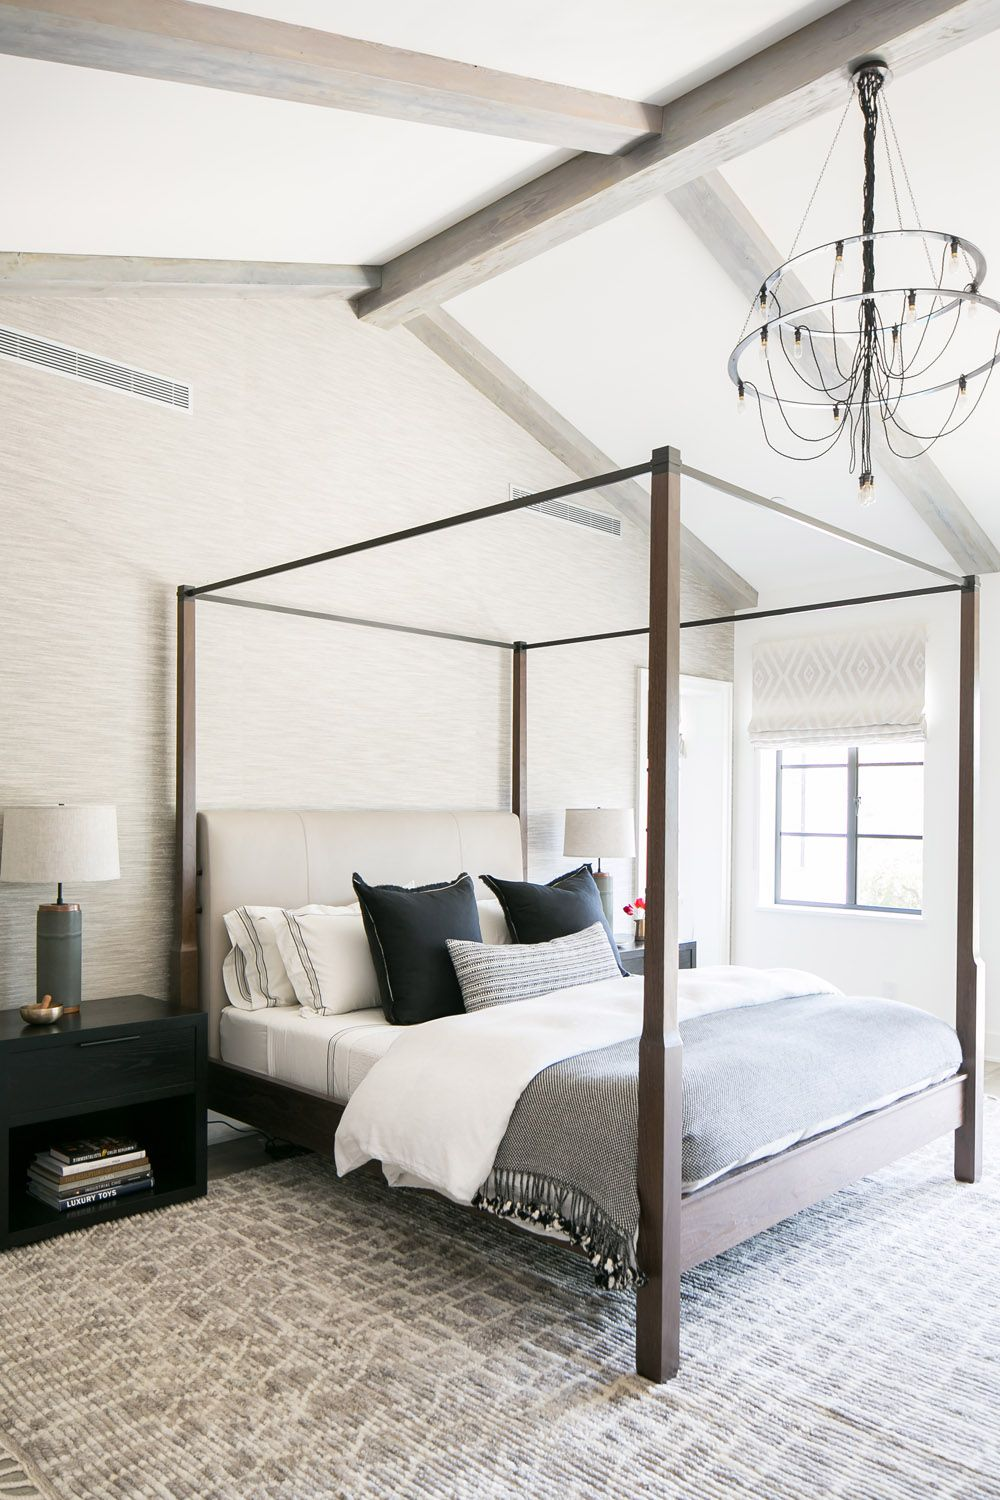 Canopy Bed In The Master Bedroom Large Rug In The Bedroom Wooden Beams On A Vaulted Ceiling Vaulted Ceiling Bedroom Modern Bedroom Wooden Bedroom Furniture